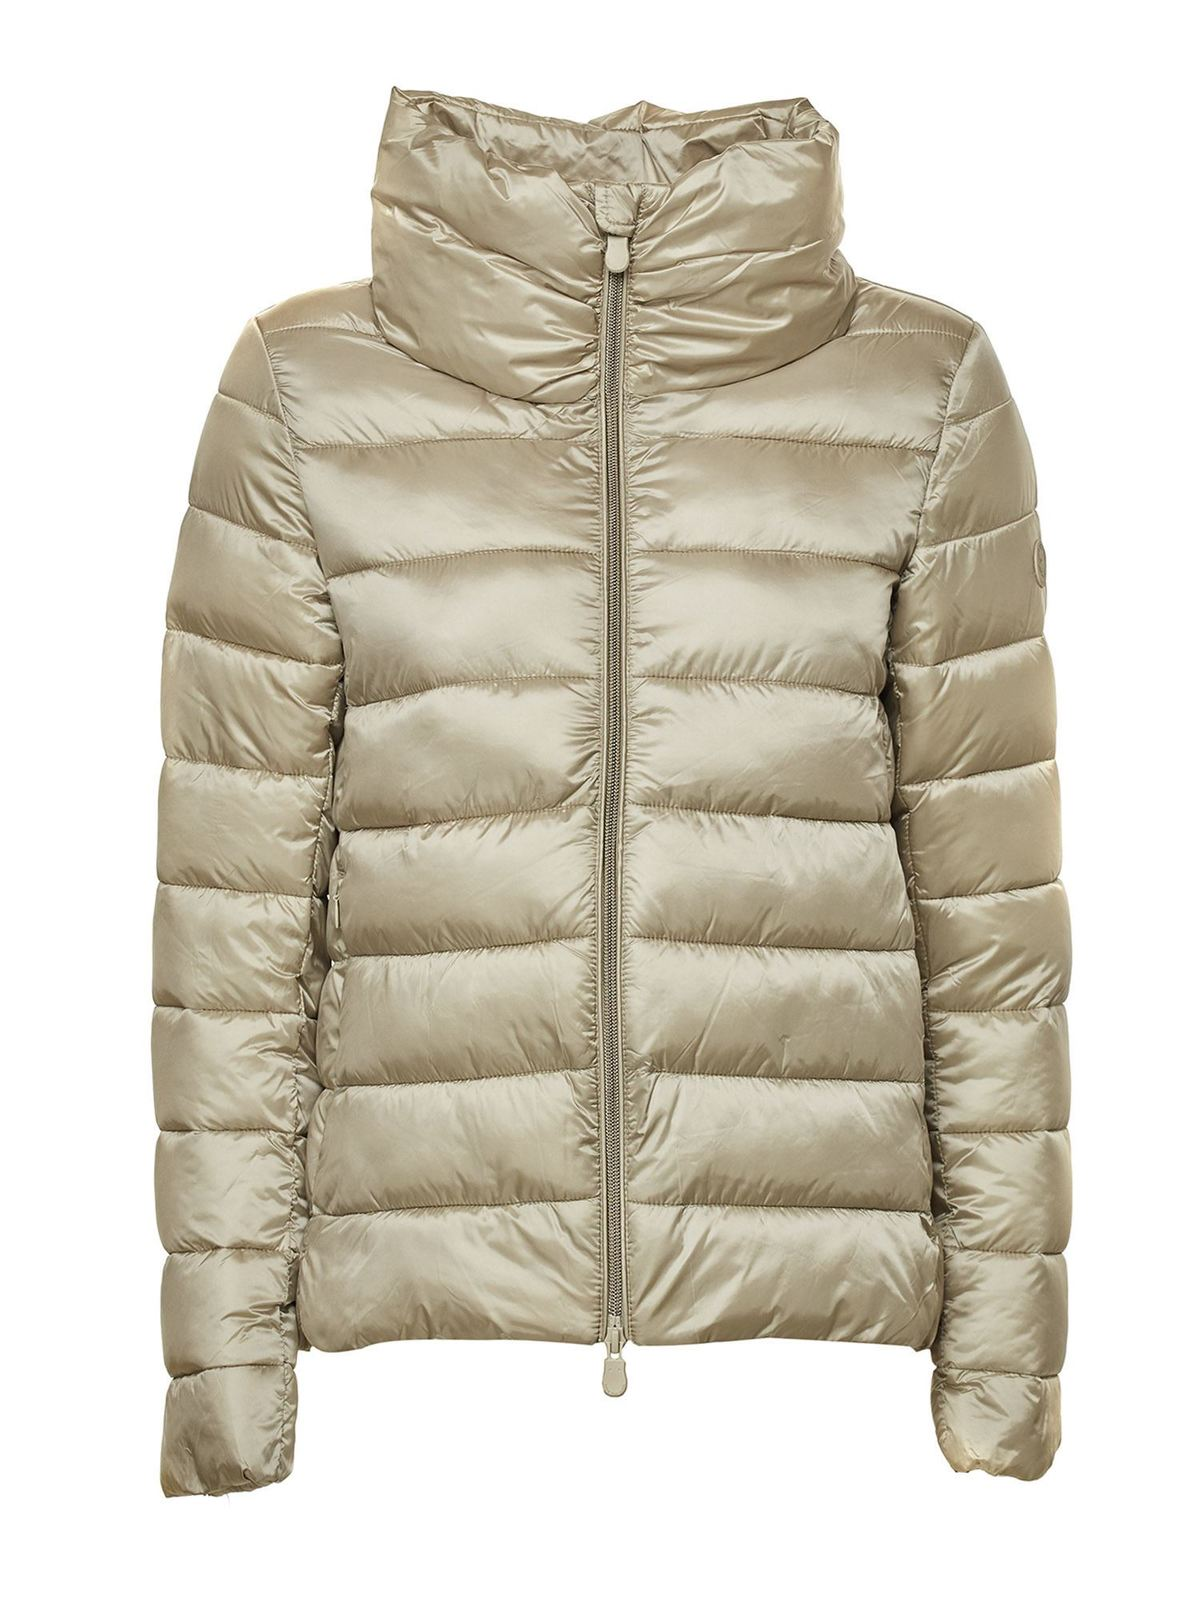 Save The Duck SATIN EFFECT PUFFED JACKET IN BEIGE